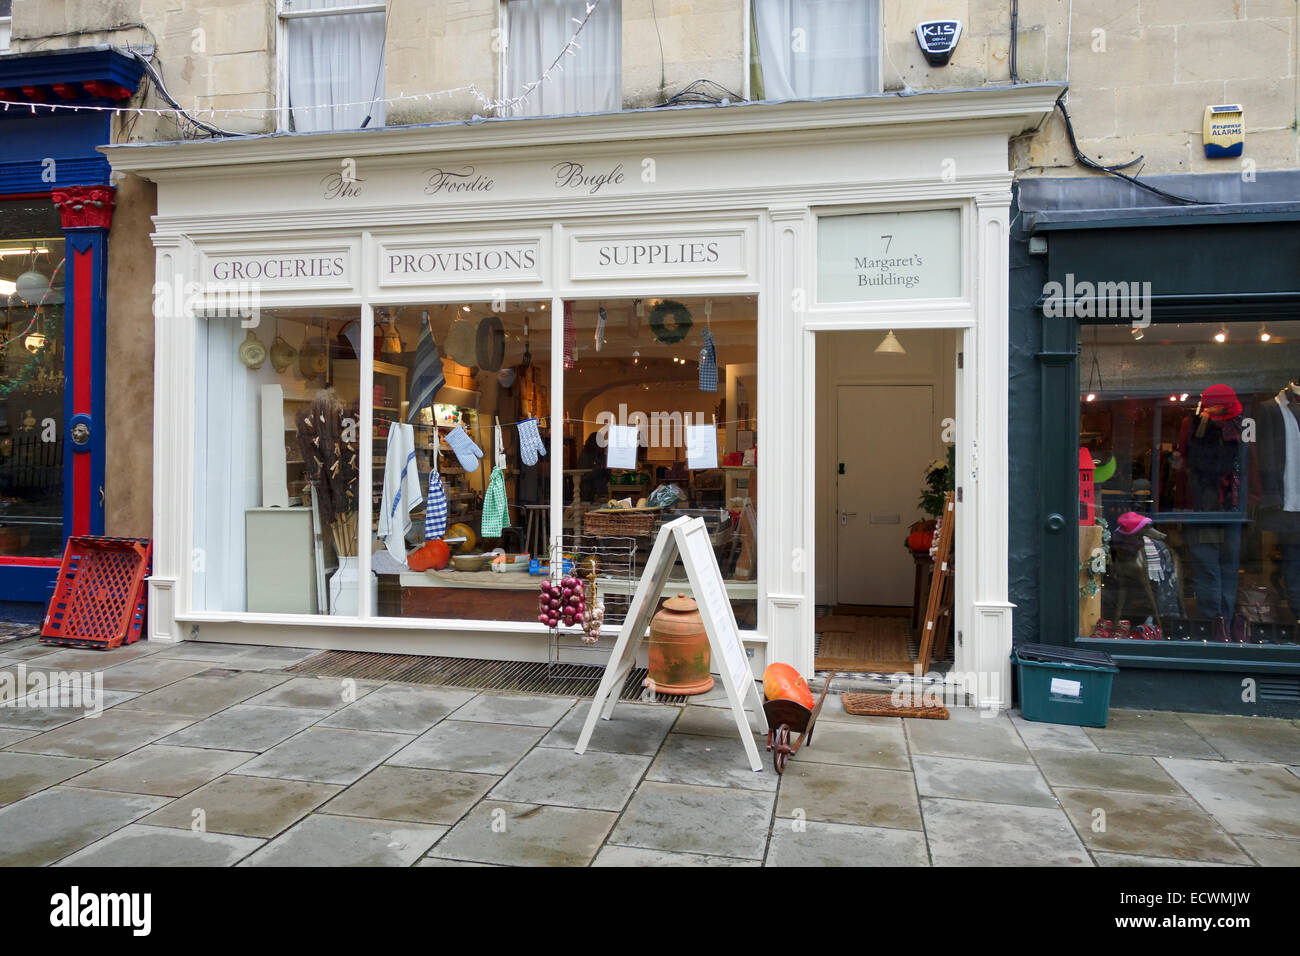 The Foodie Bugle Shop, Margarets Buildings, Bath - Stock Image